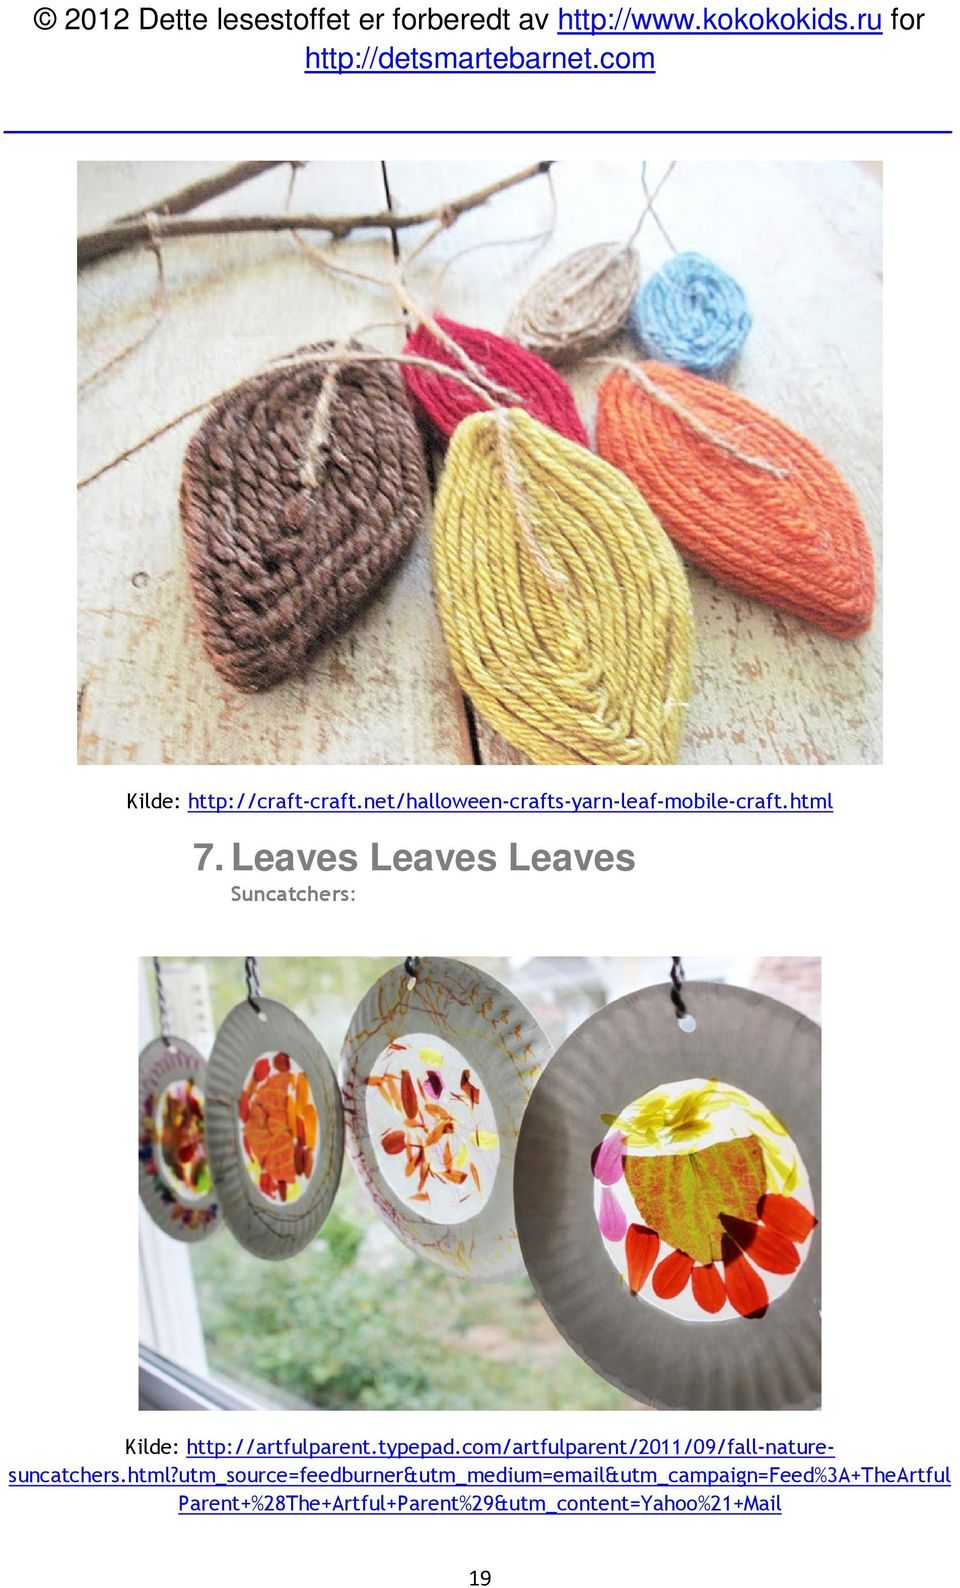 com/artfulparent/2011/09/fall-naturesuncatchers.html?